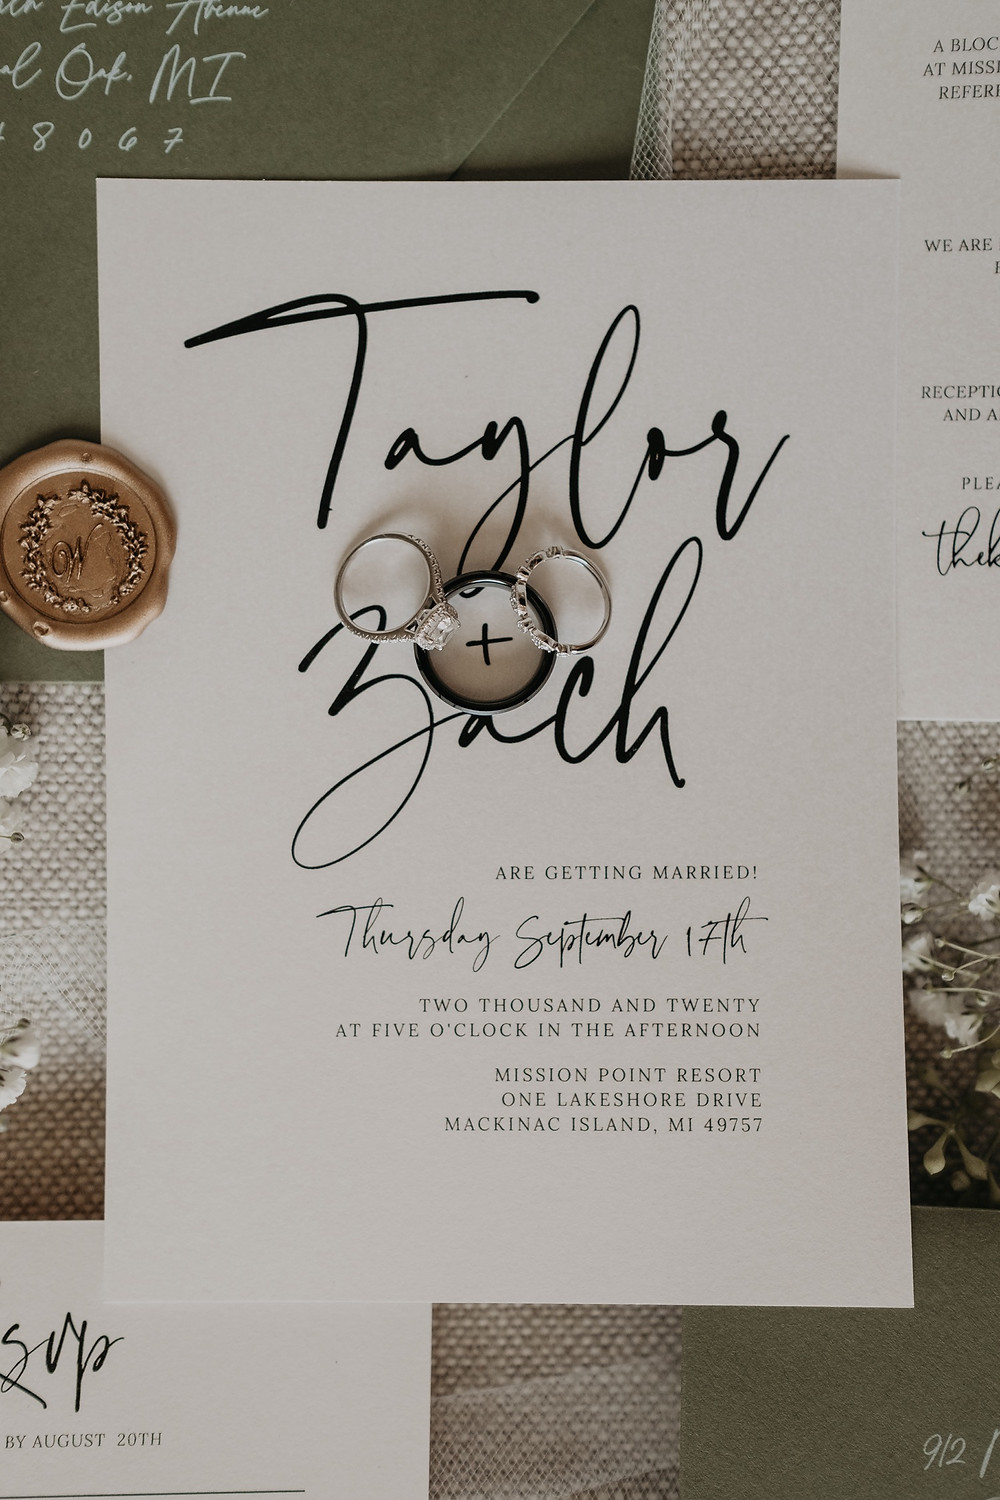 Wedding stationary suite. Photographed by Nicole Leanne Photography.